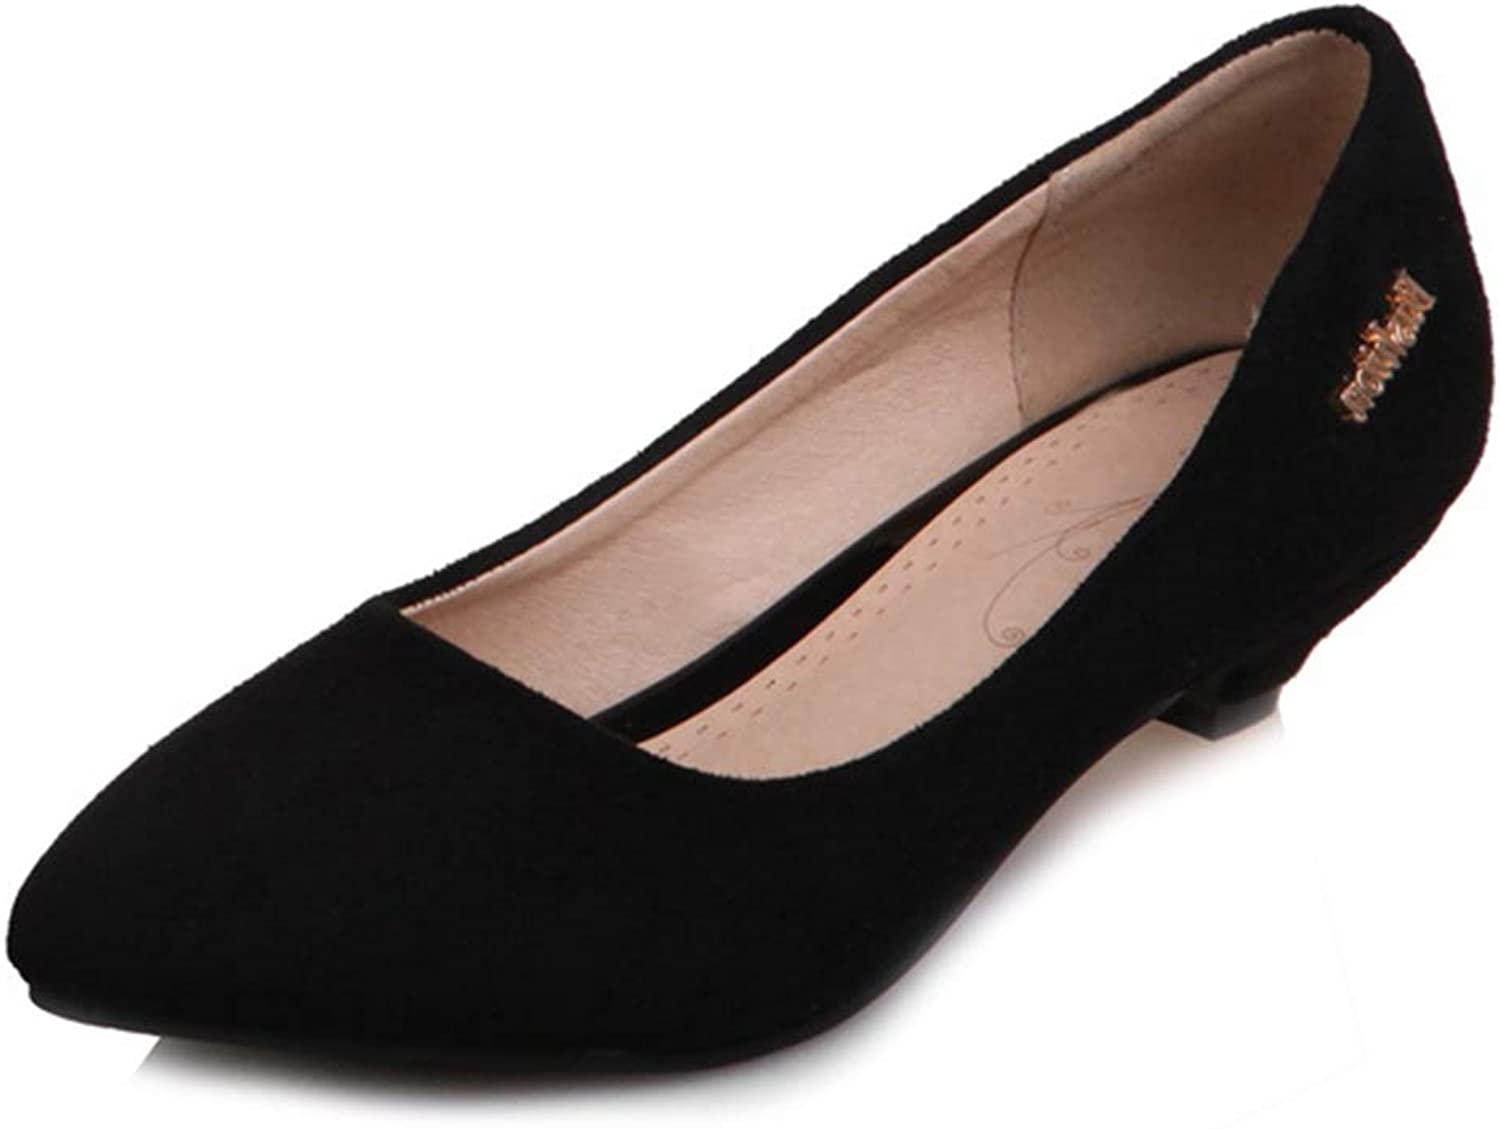 GIY Women's Pointed Toe Casual Oxfords Loafers shoes Suede Slip-On Low Wedge Heels Retro Dress Pumps